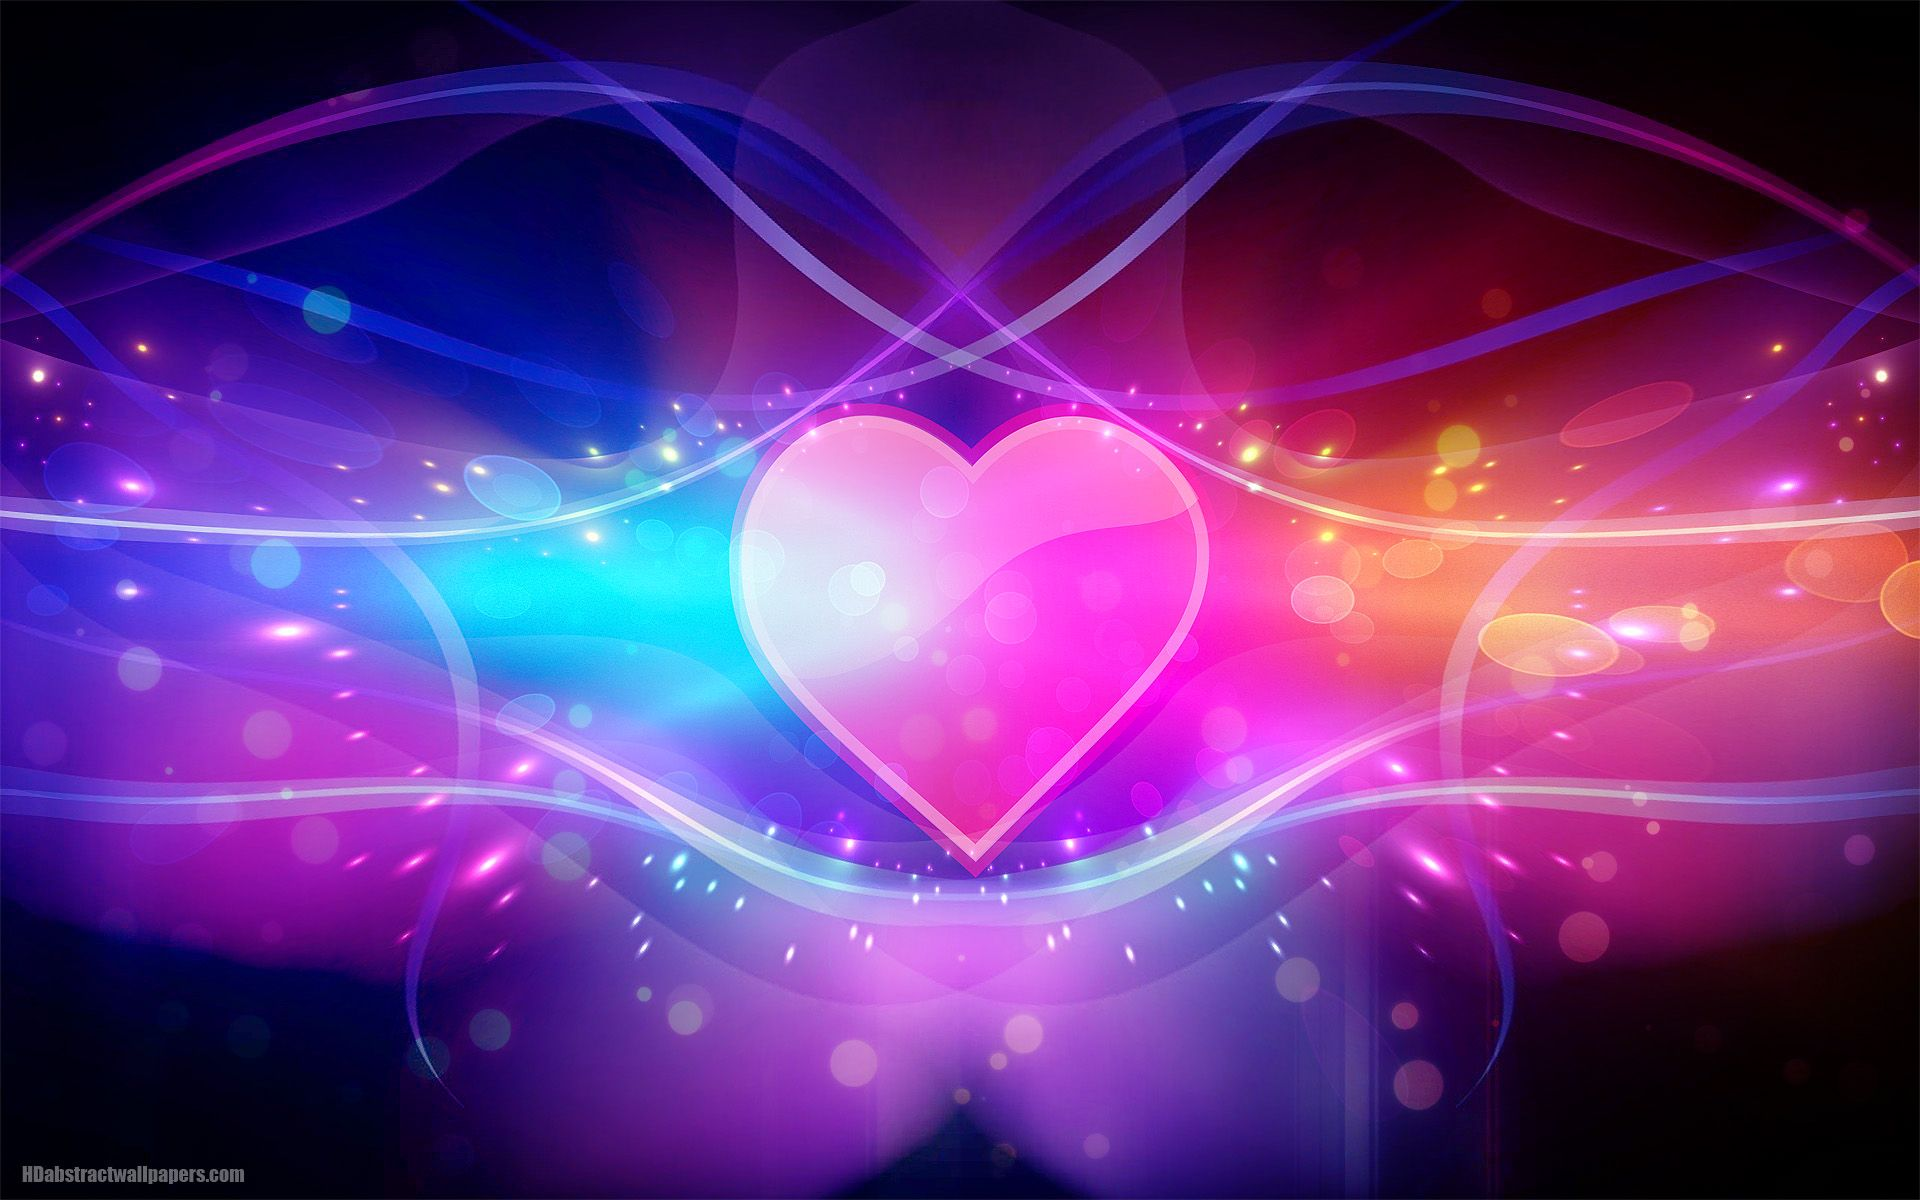 All Love Wallpaper Images : colorful abstract wallpaper with pink love heart HD Abstract ... Hearts L ve Pinterest ...